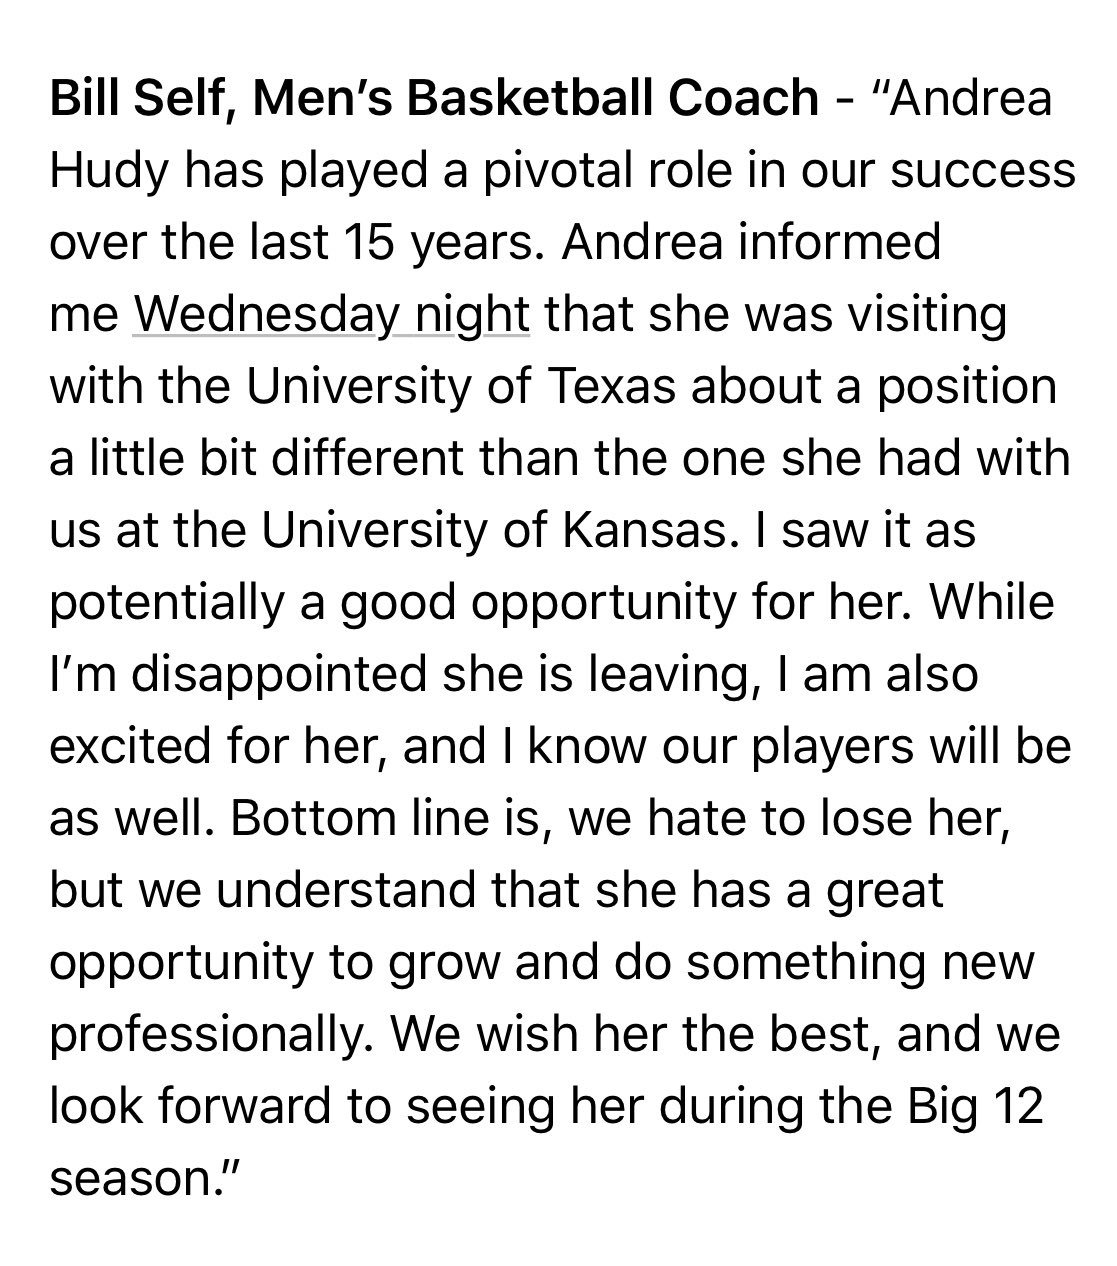 Quotes & reaction from #Kubball on Andrea Hudy's departure from the program... https://t.co/qItM3ni32v